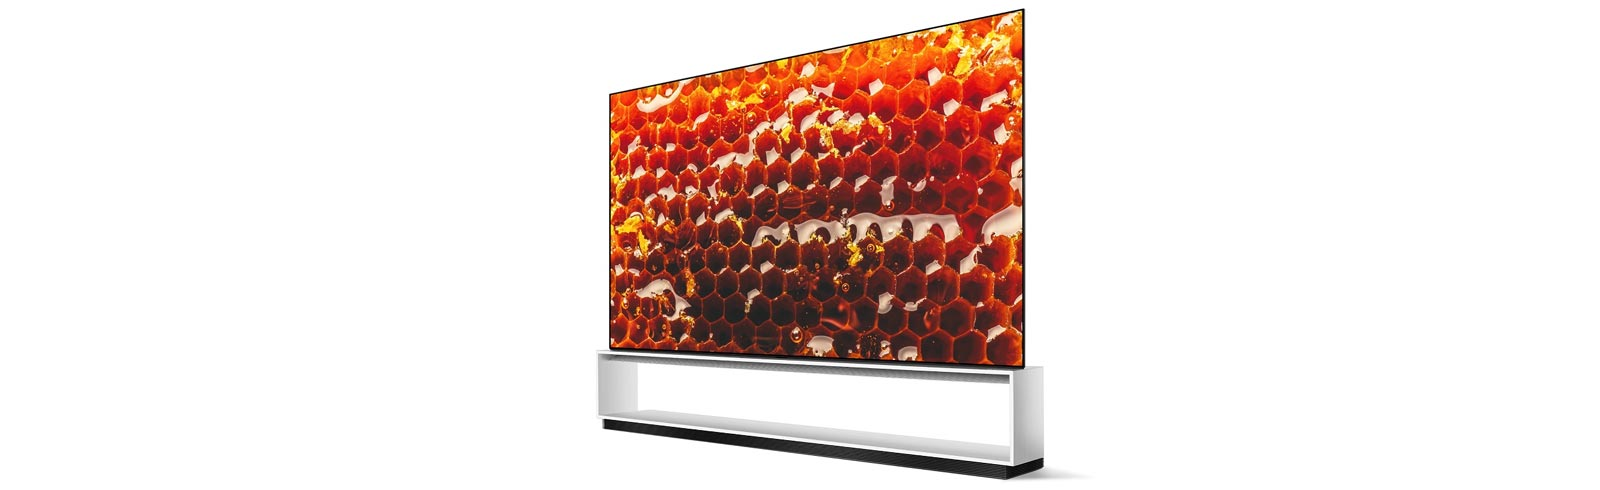 The LG Signature 8K OLED TV will be available internationally